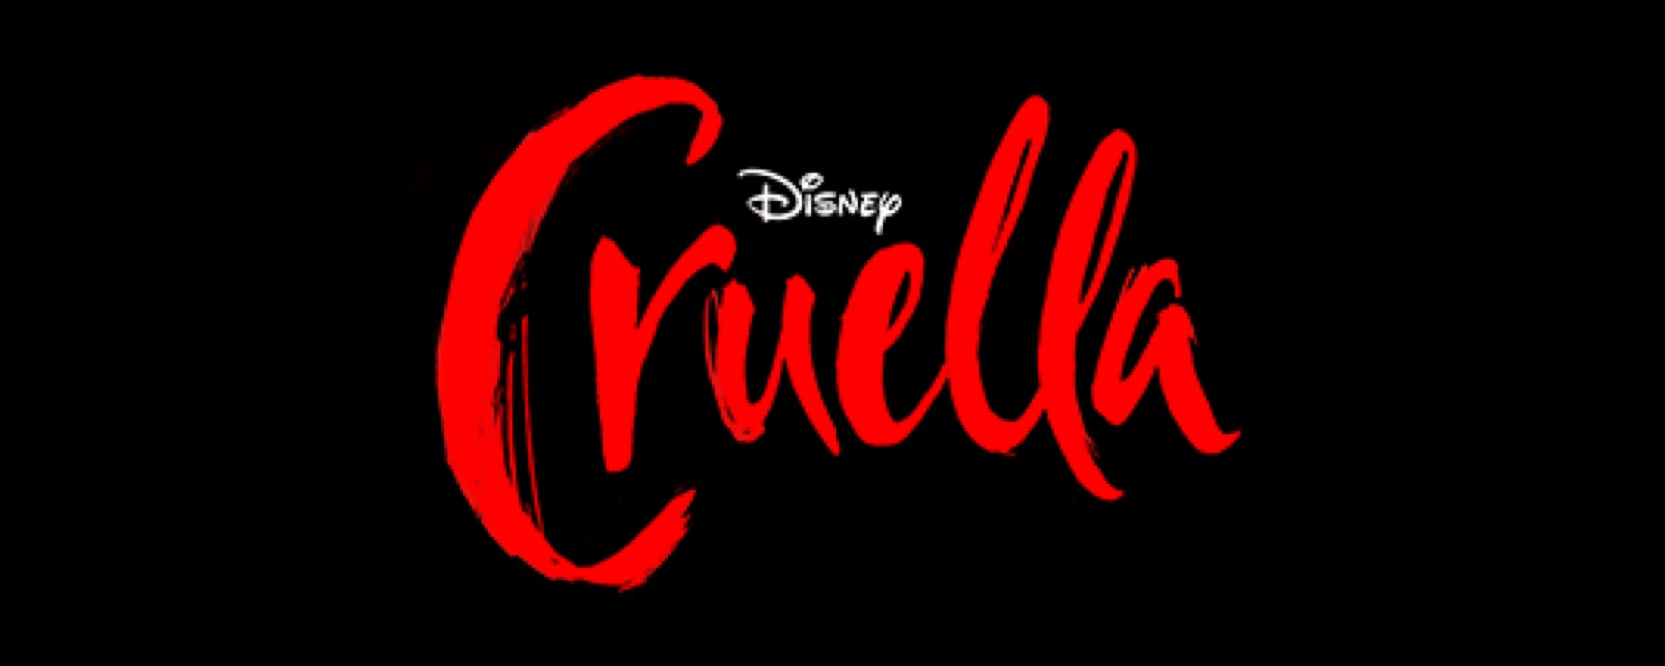 """DISNEY'S """"CRUELLA,"""" THE MOVIE EVENT THAT KICKED OFF THE SUMMER, WILL BE AVAILABLE TO DISNEY+ SUBSCRIBERS BEGINNING FRIDAY, 27th AUGUST"""